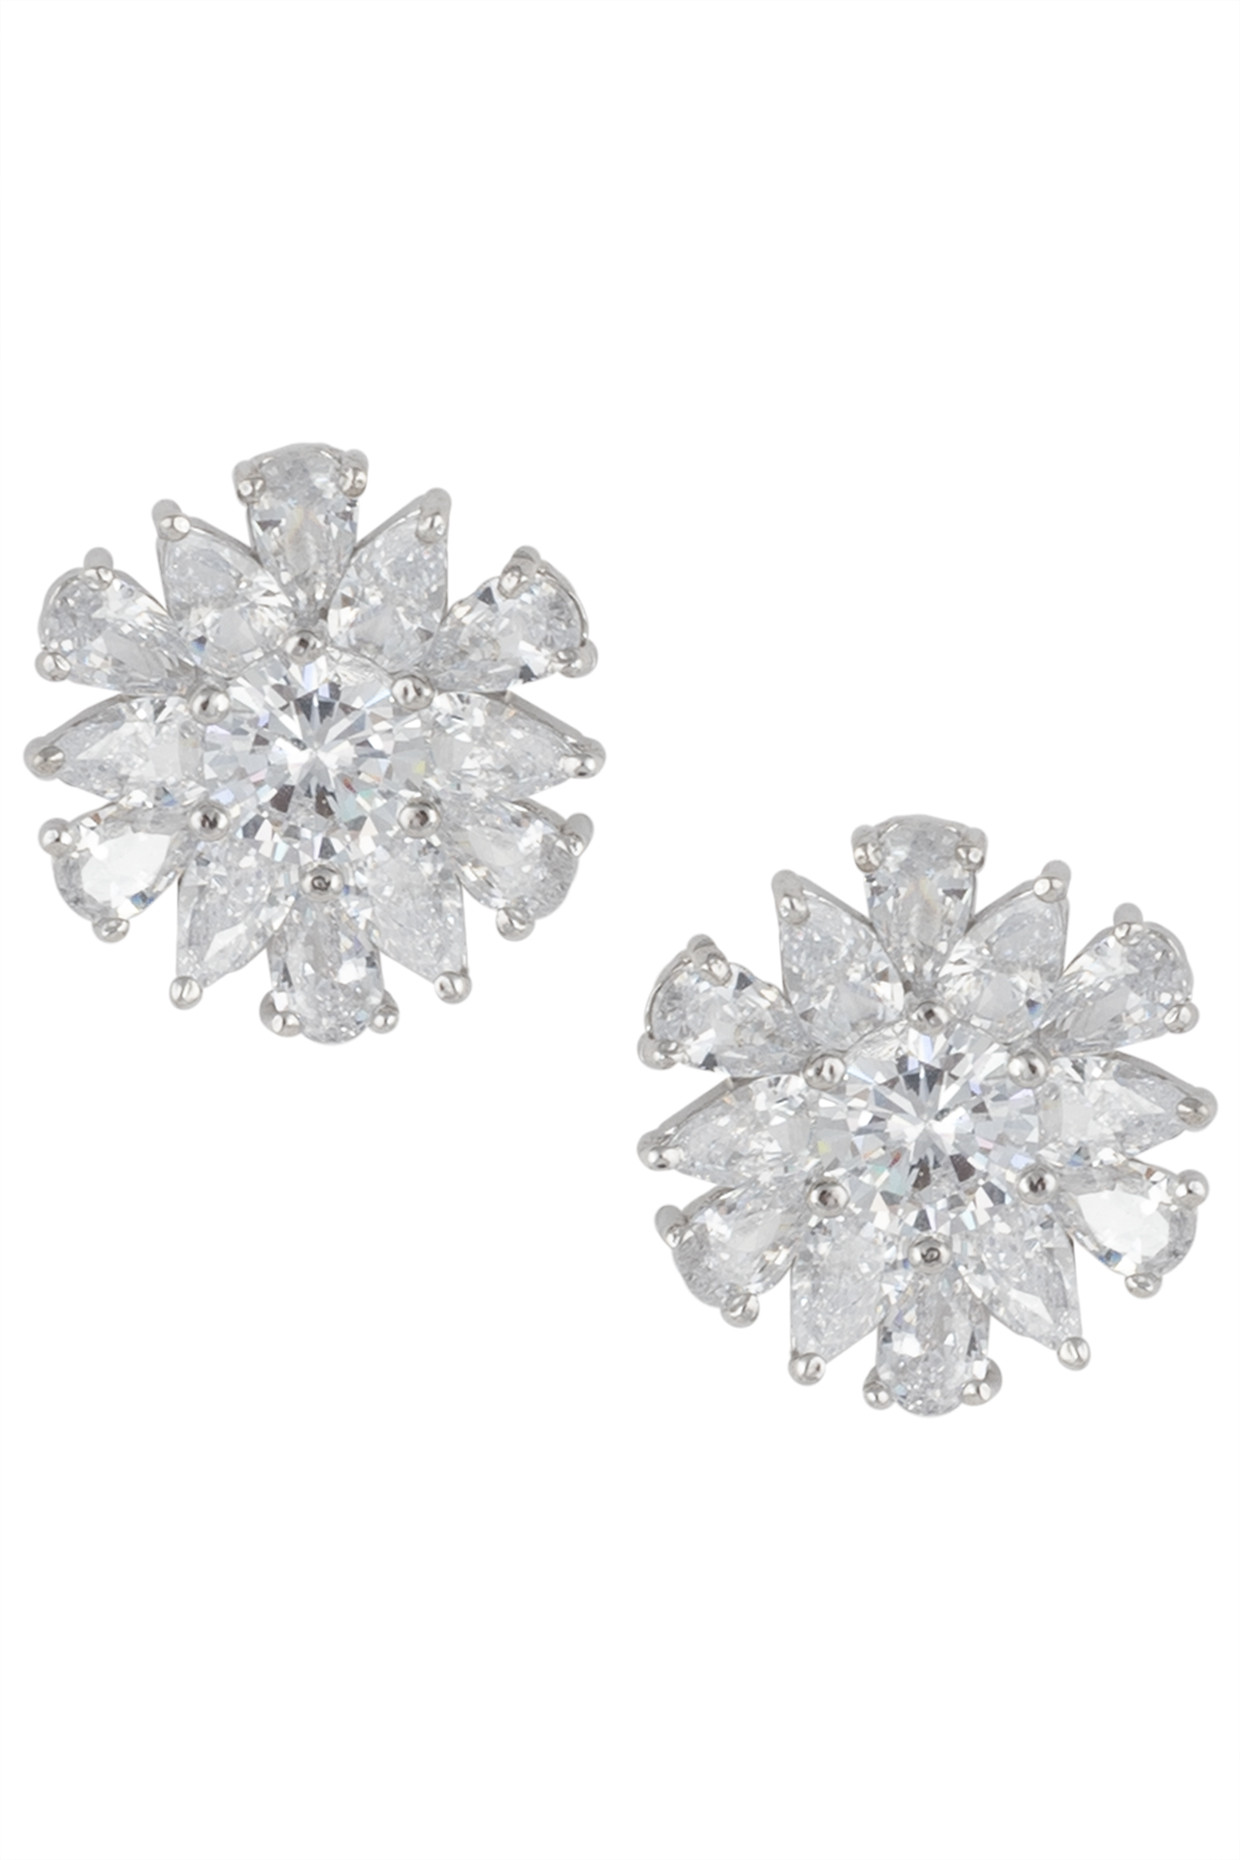 Silver plated small floral diamond stud earrings by Aster